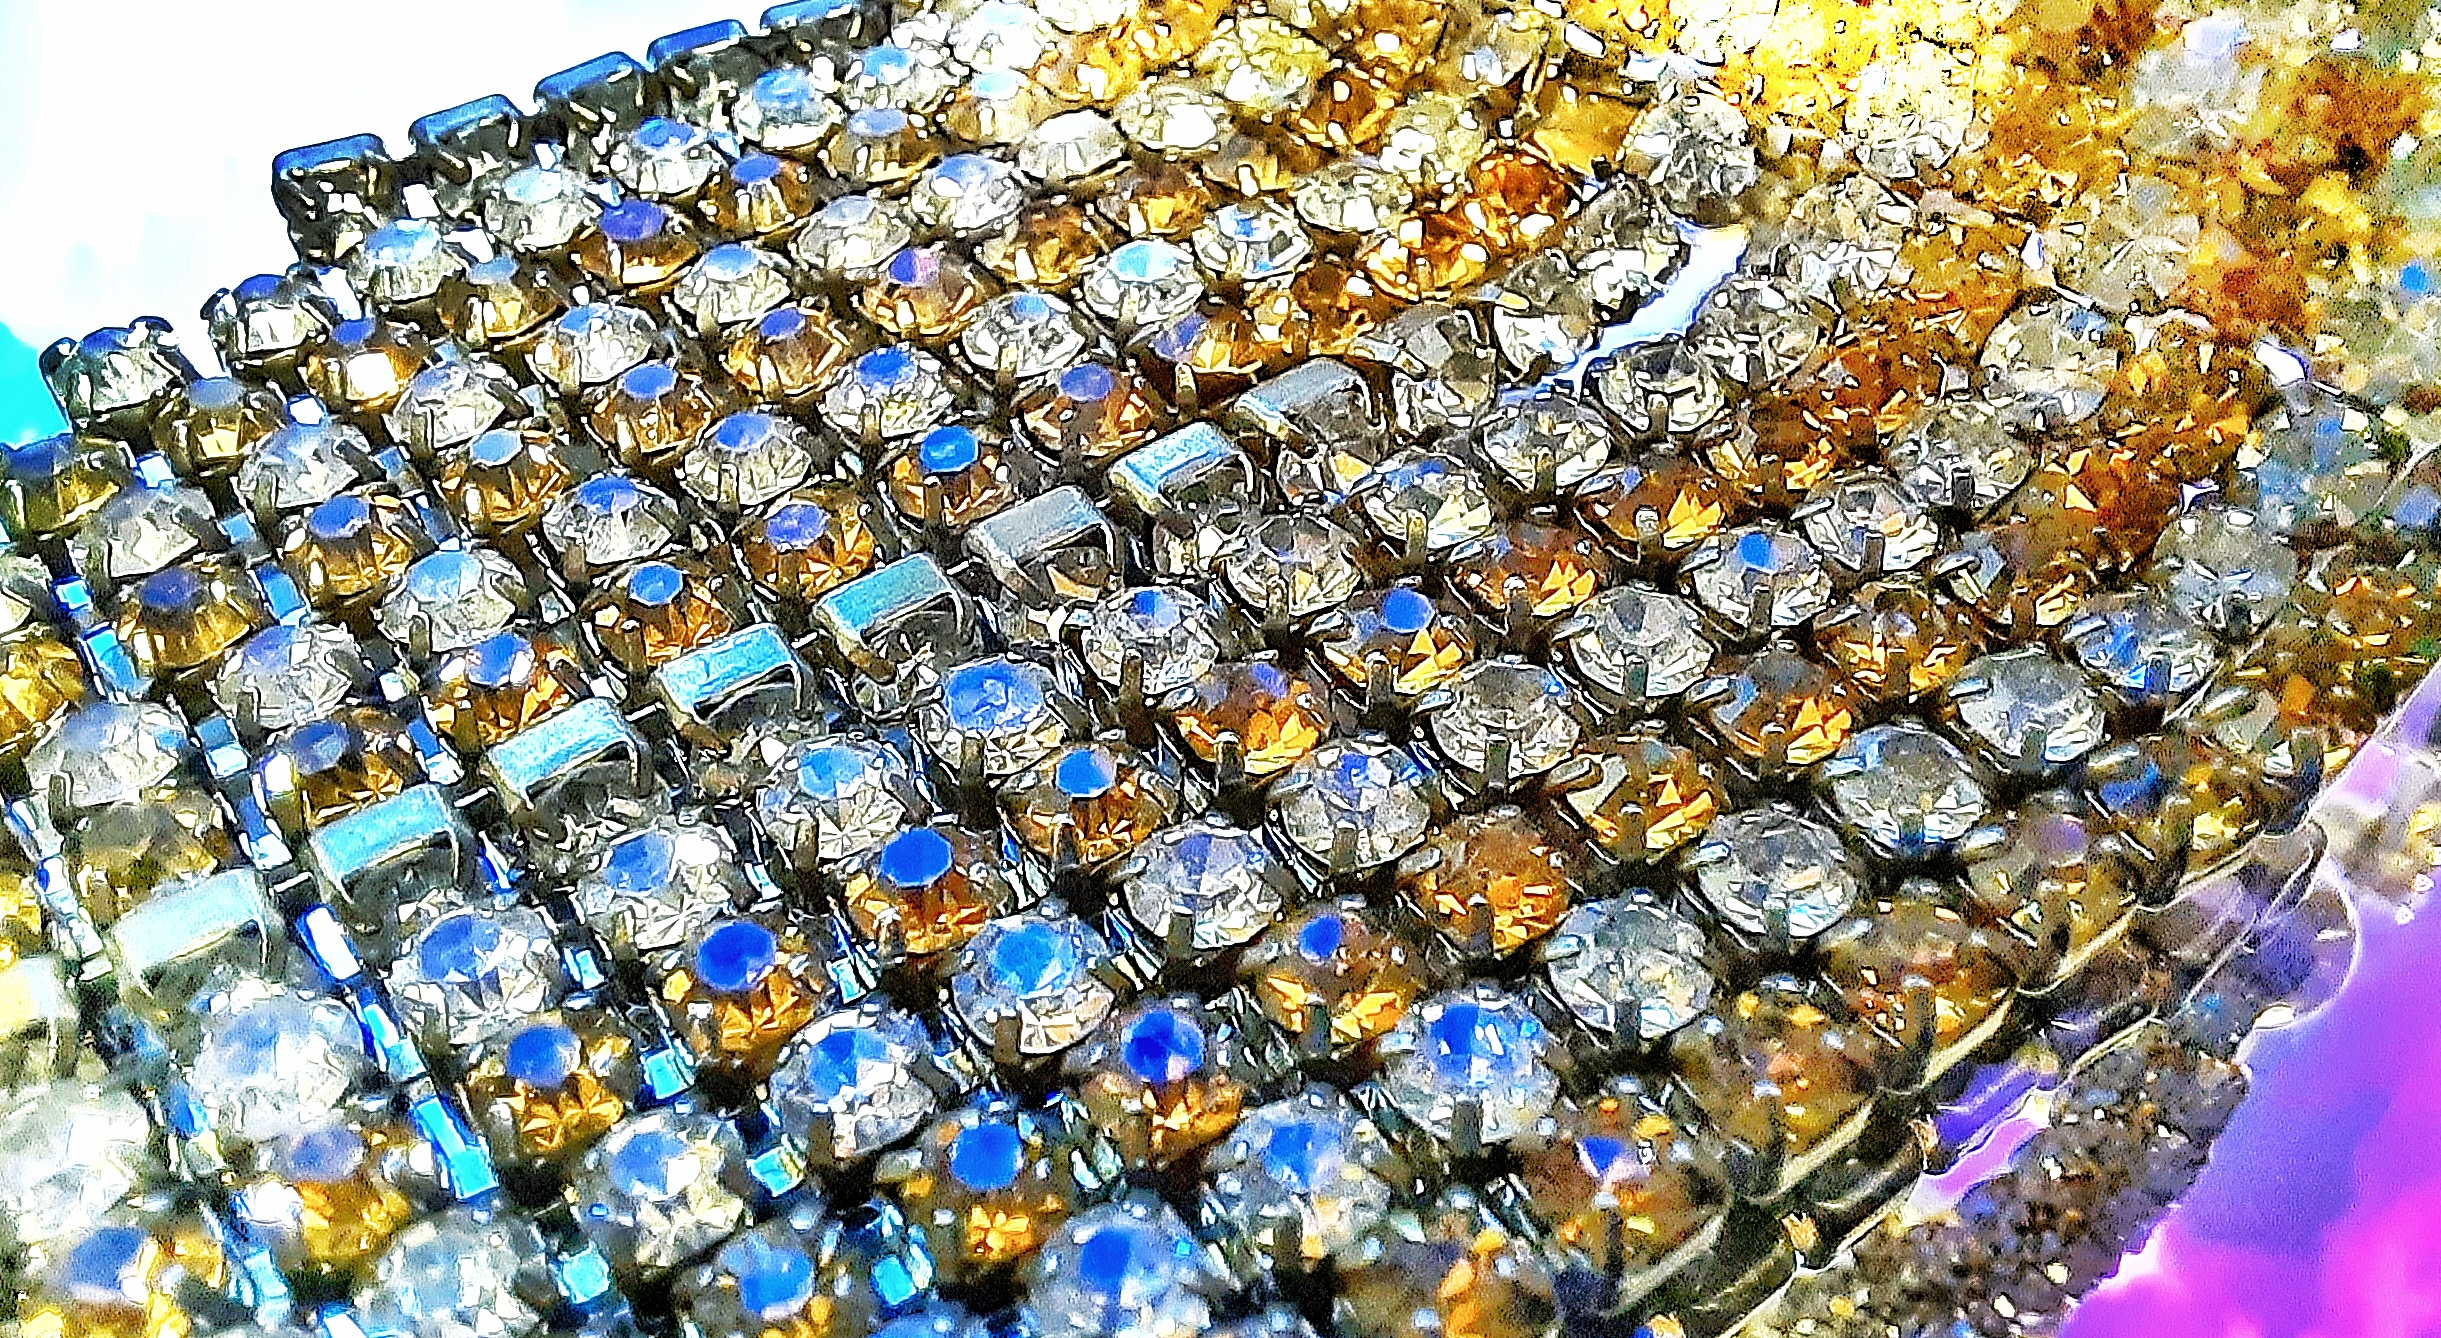 Jewellery in close-up